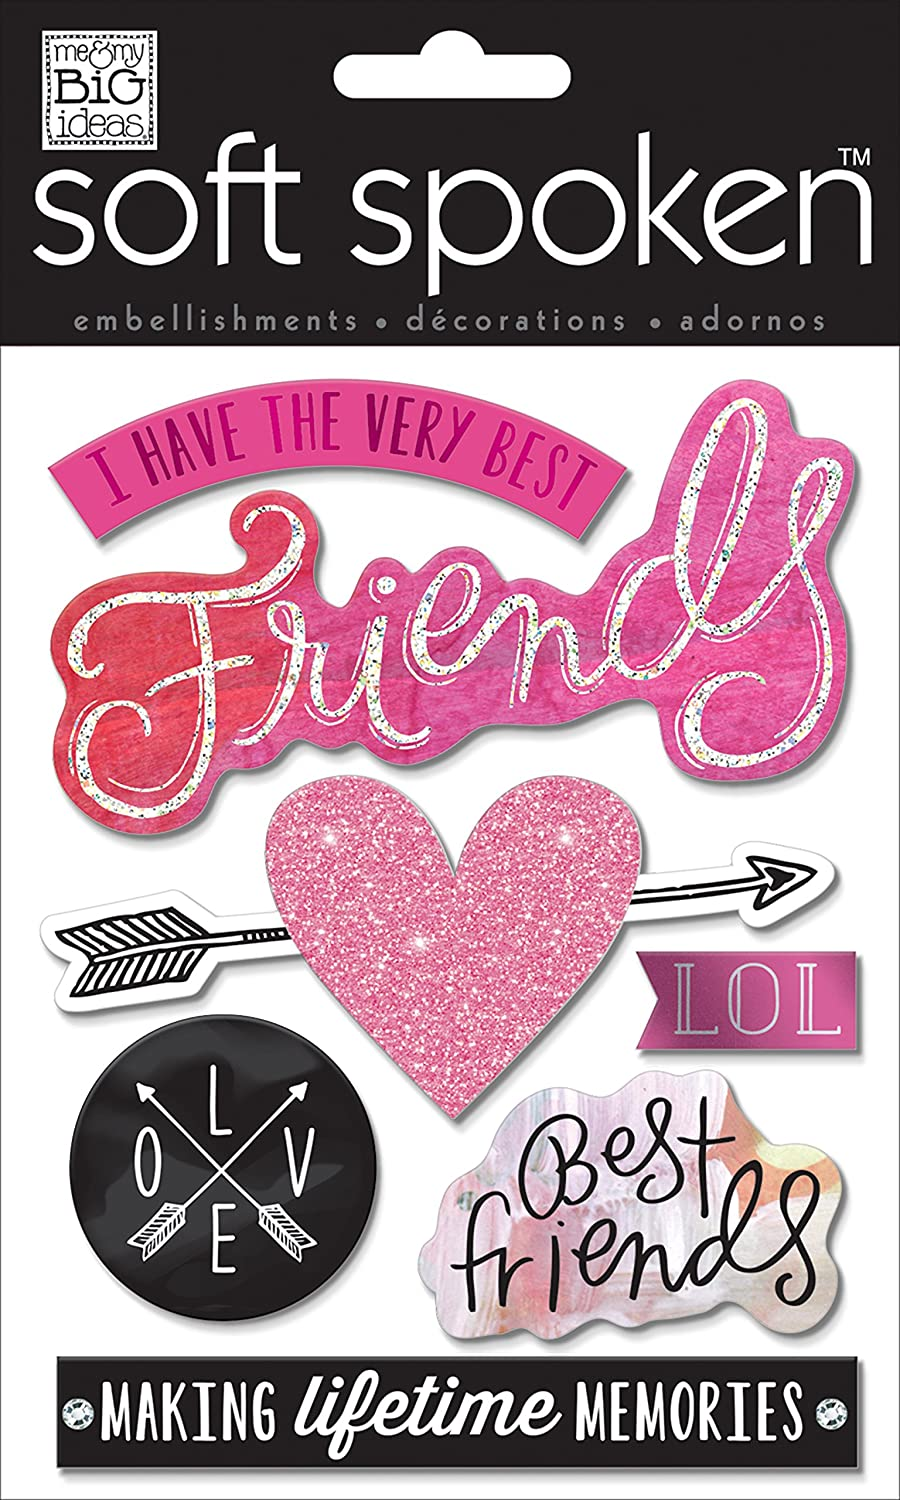 me & my BIG ideas Soft Spoken Themed Embellishments, I Have The Very Best Friends